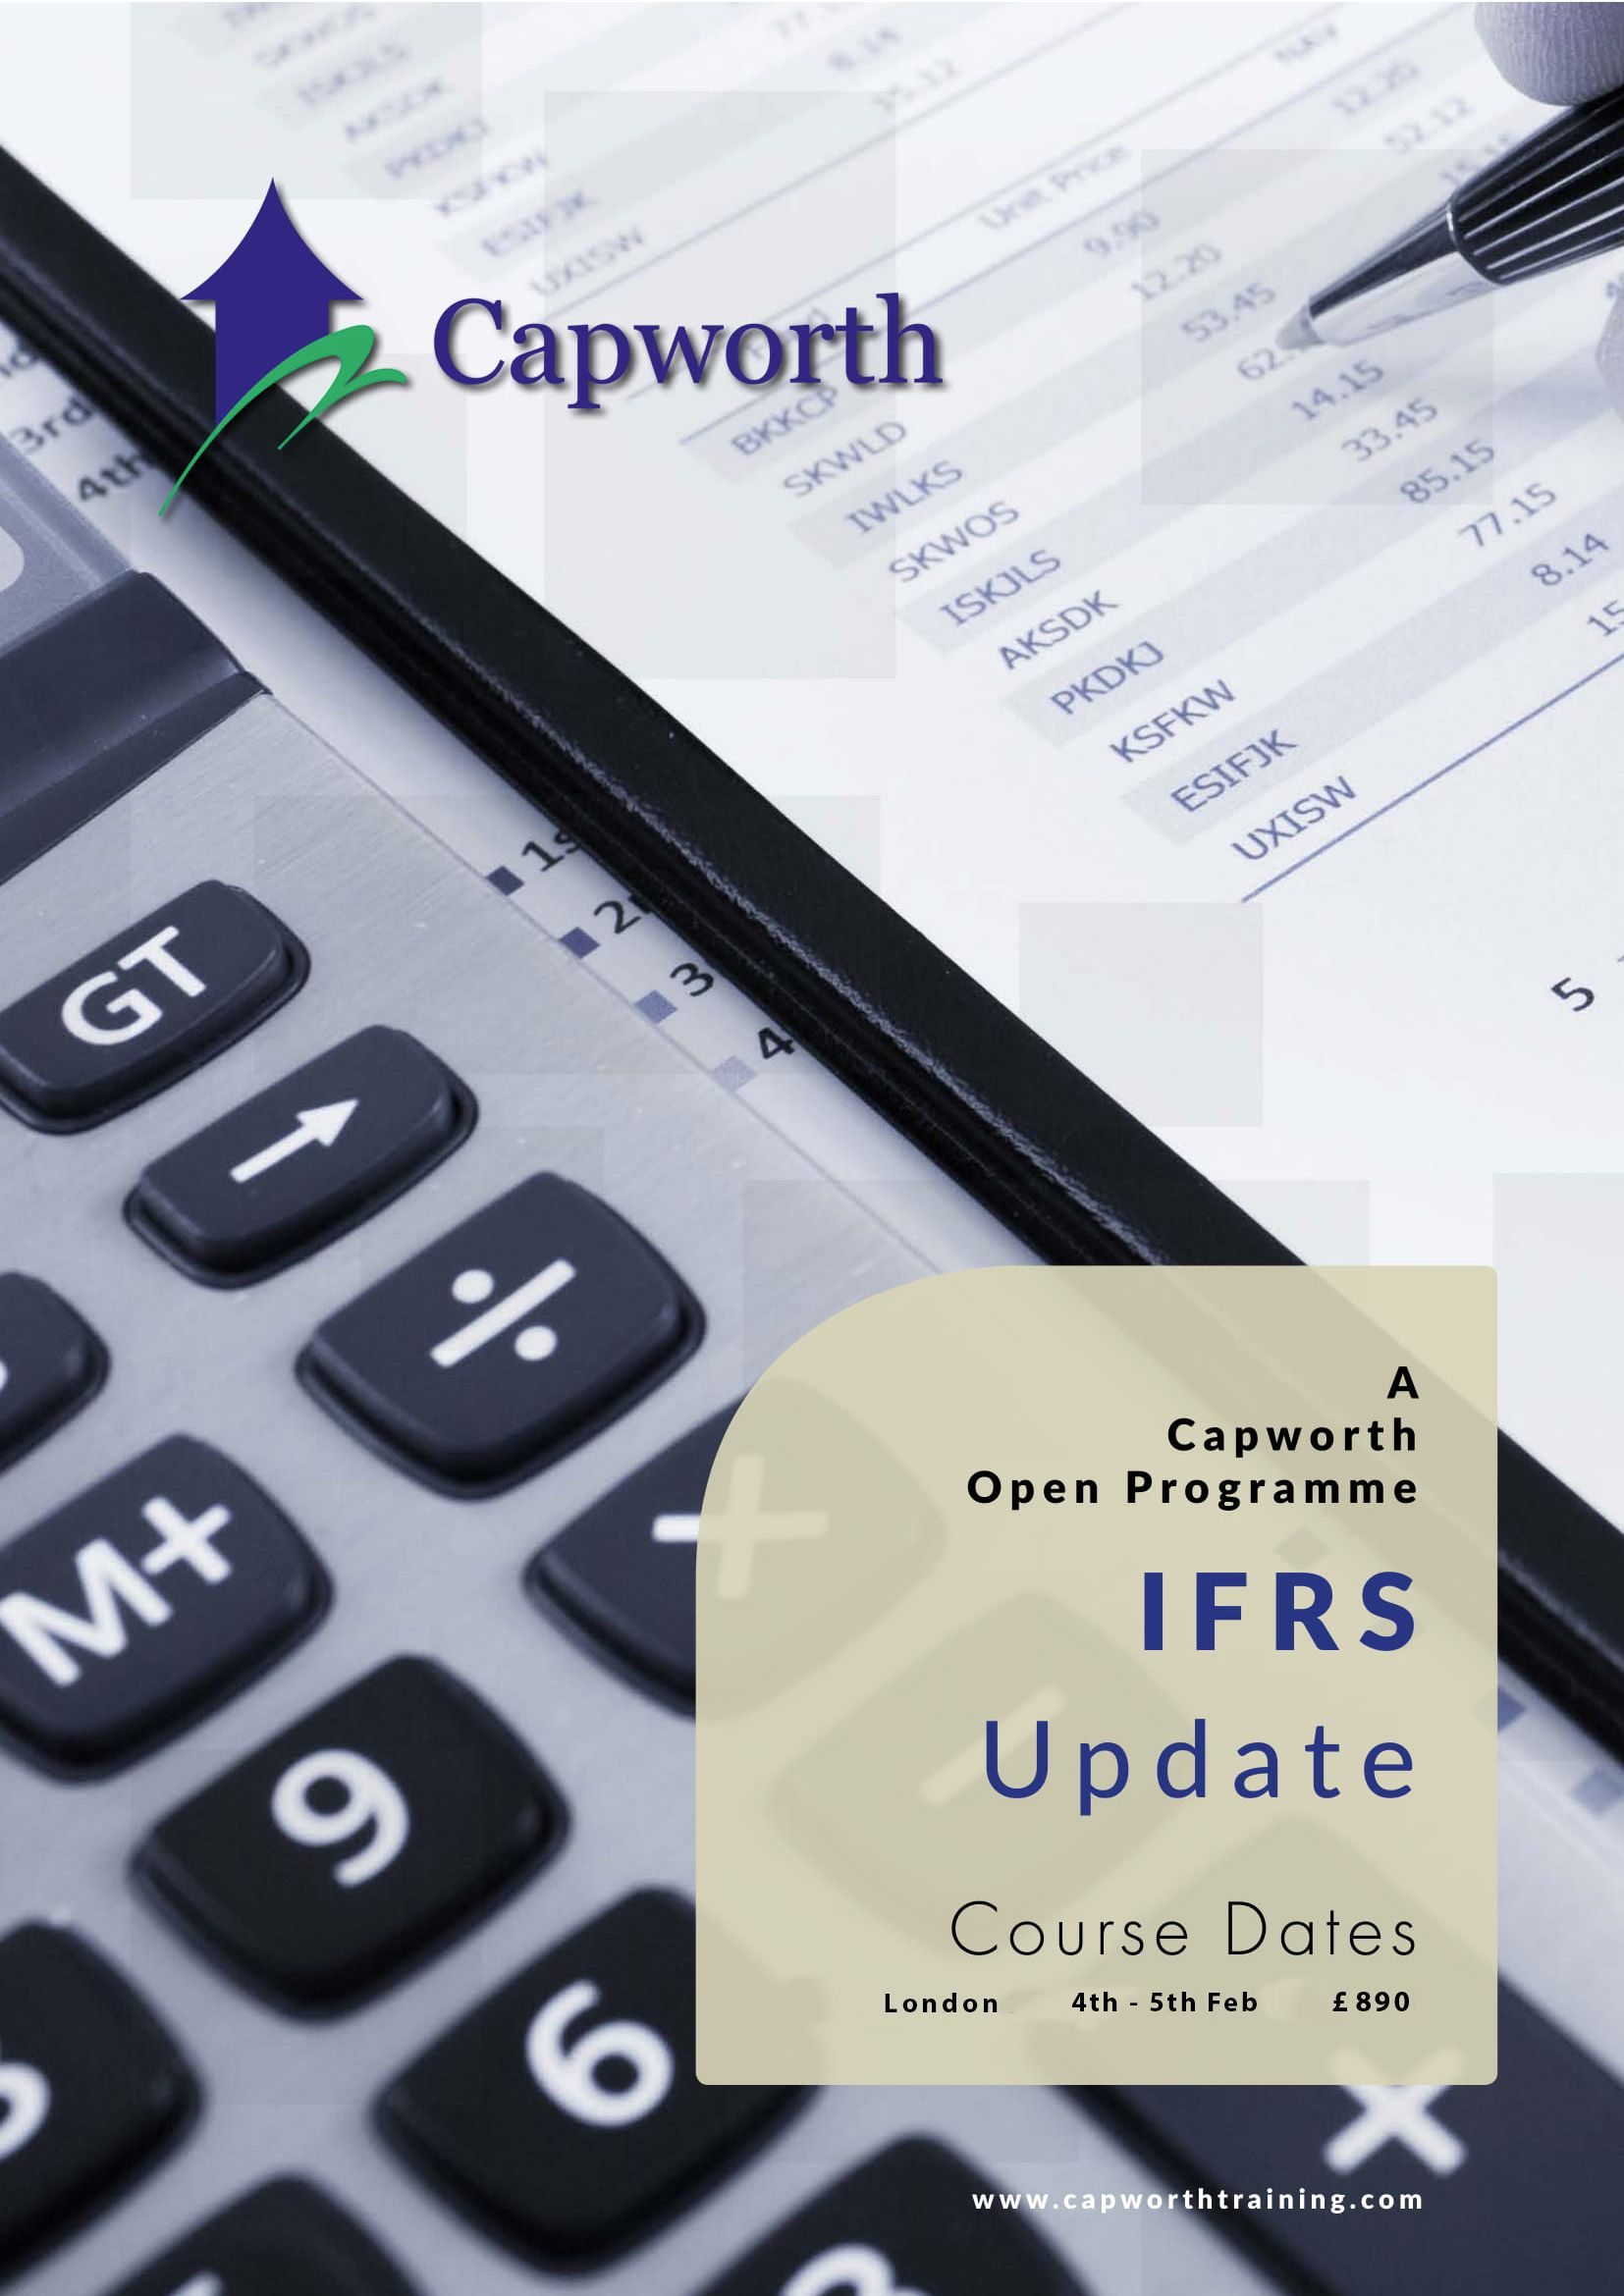 IFRS Update - International_Nigeria - Q2 - 2018 - Open Course - v1.1 PH July_Page_1.jpg